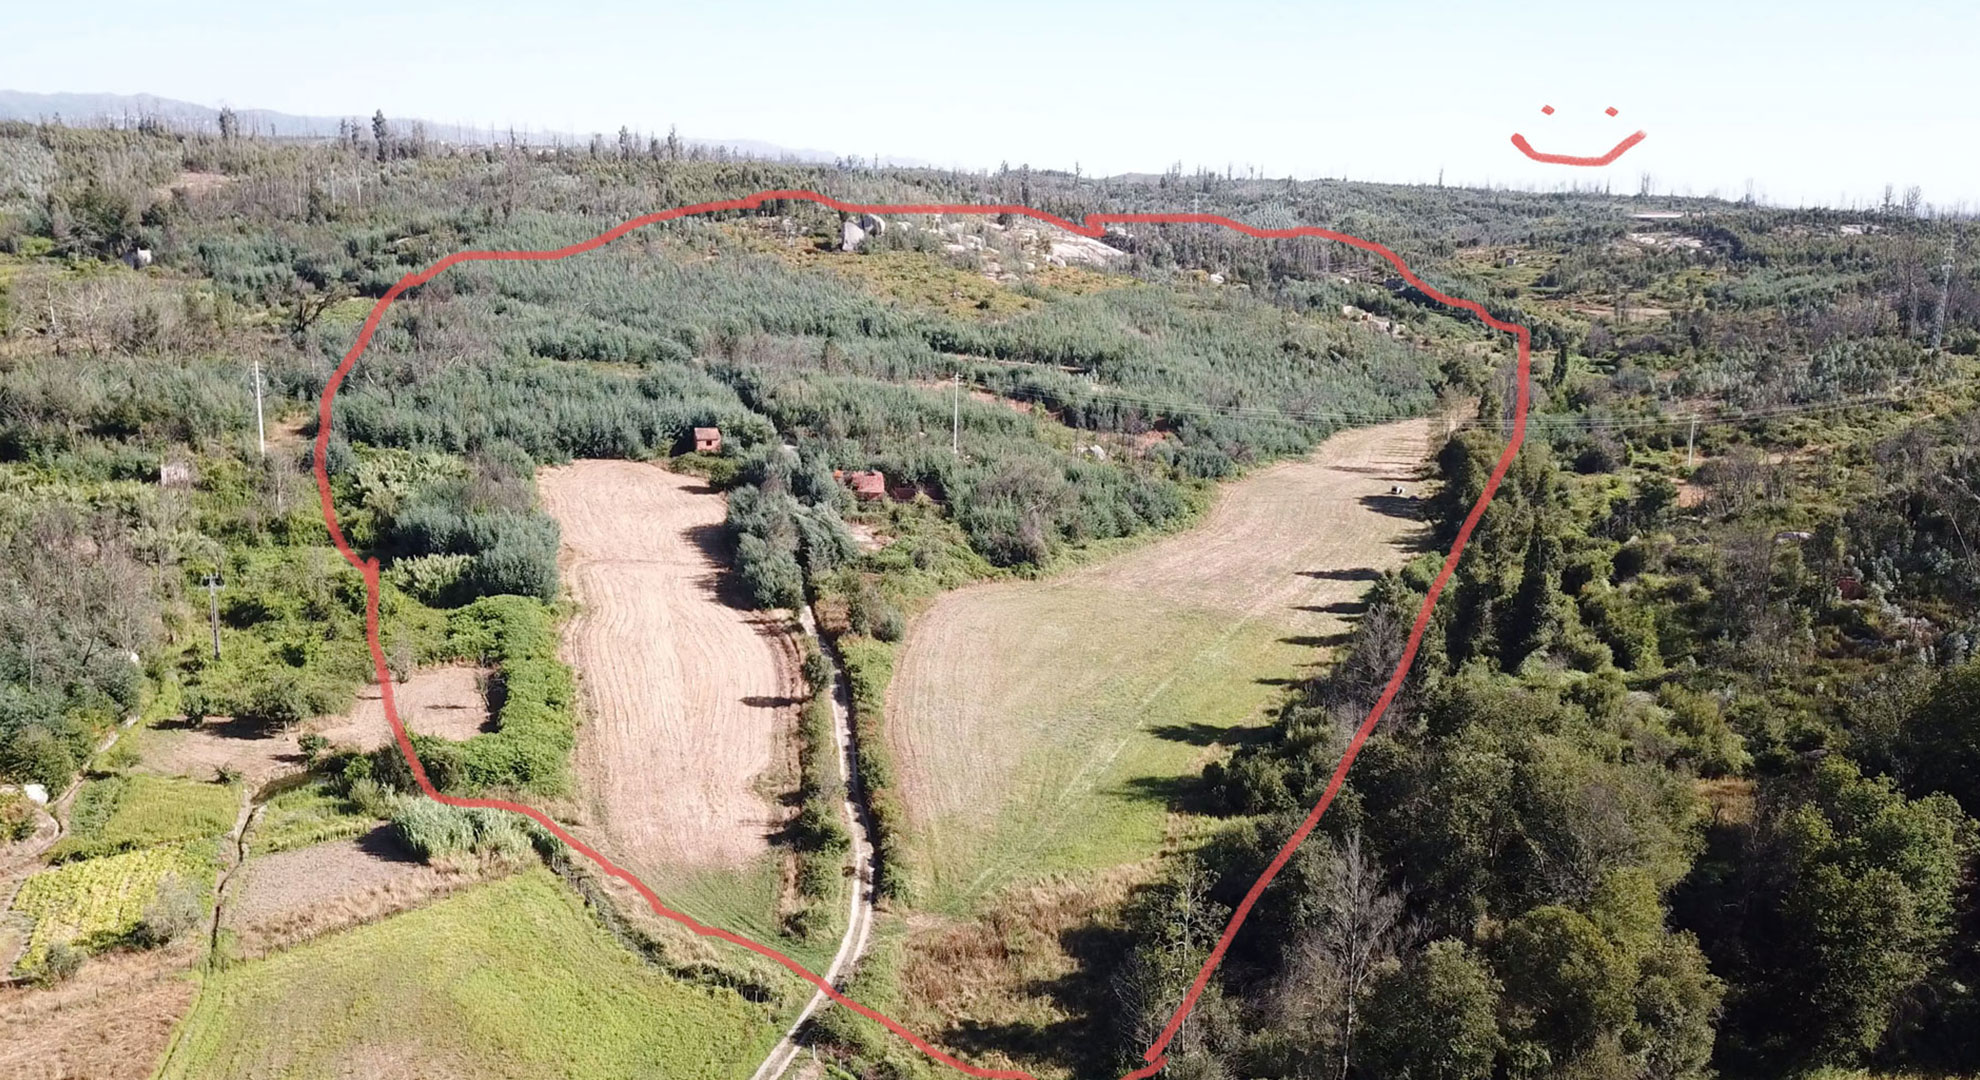 Birds-eye-view of Project Kamp land with overlaid sketch